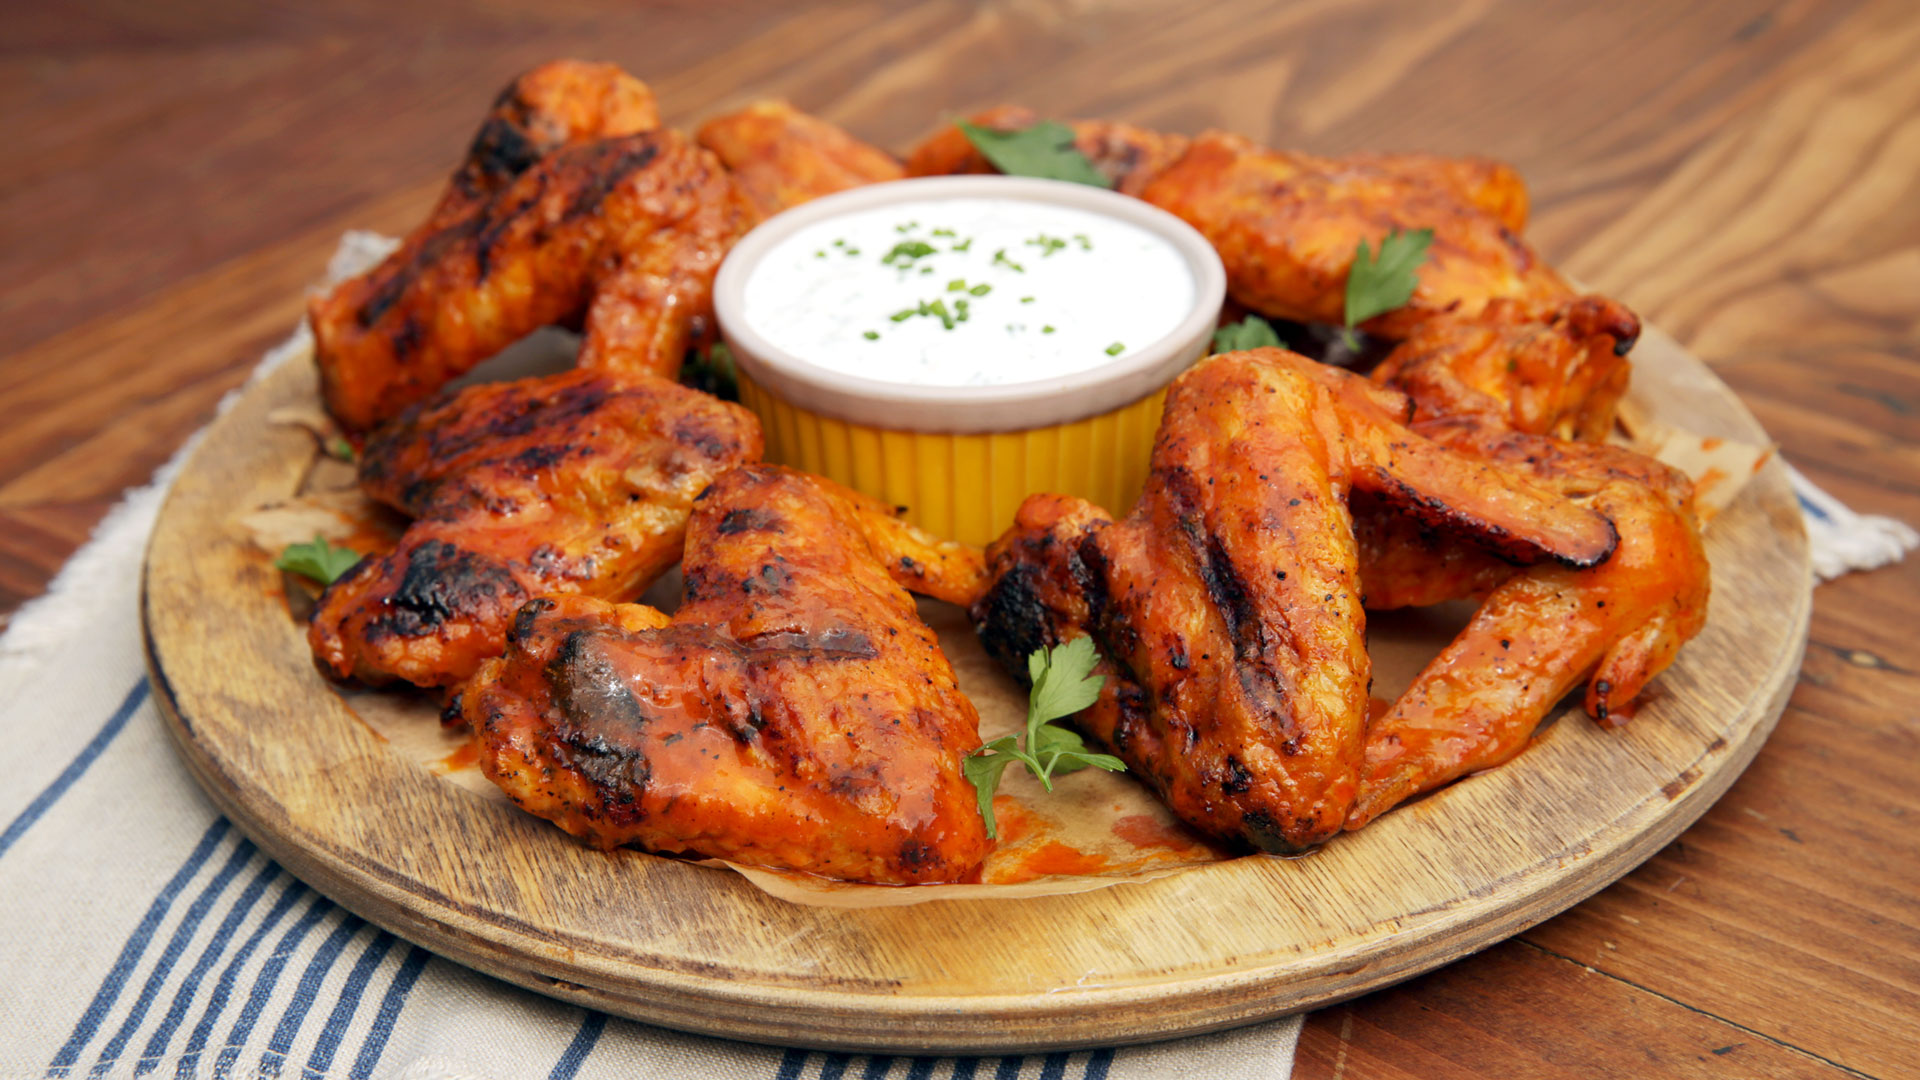 1920x1080 Wallpaper of a Plate of Grilled Spicy Chicken Wings | PaperPull